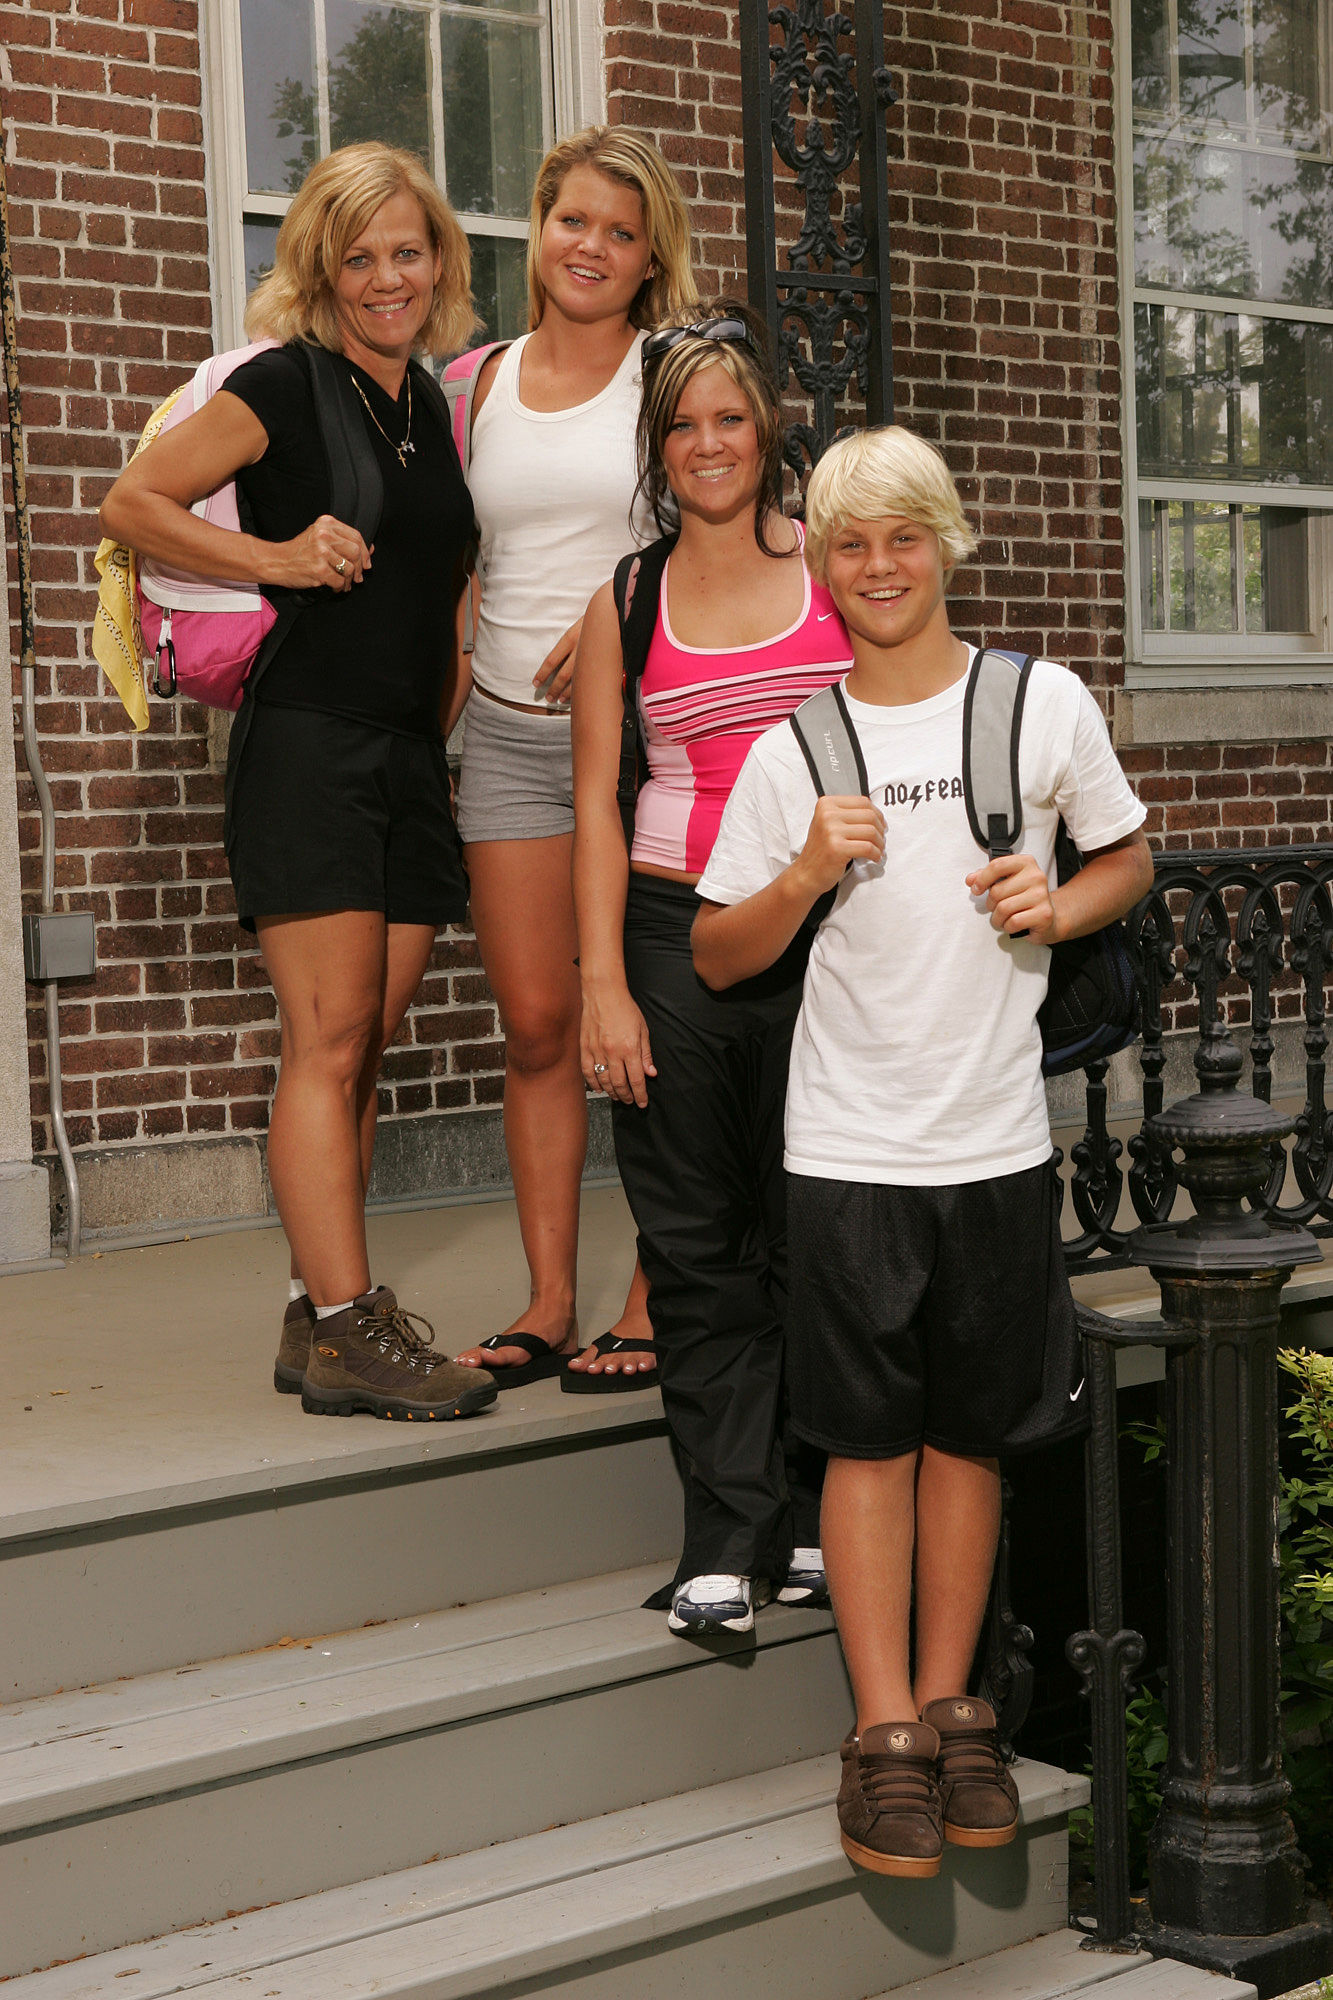 Weaver Family The Amazing Race Wiki Fandom Powered By Wikia